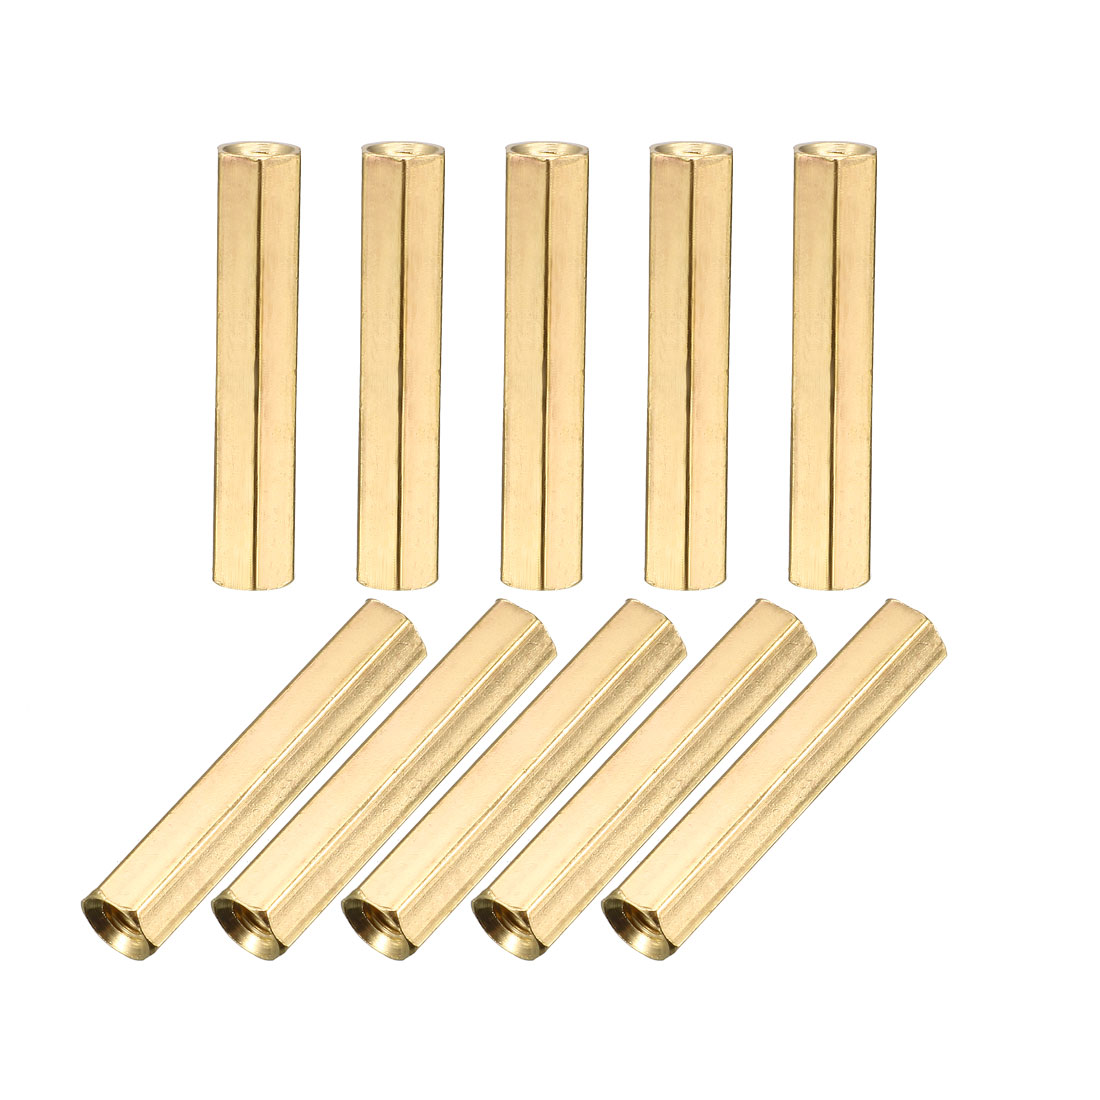 M3 x 25mm Female/Female Thread Brass Hex Standoff PCB Pillar Spacer 10pcs